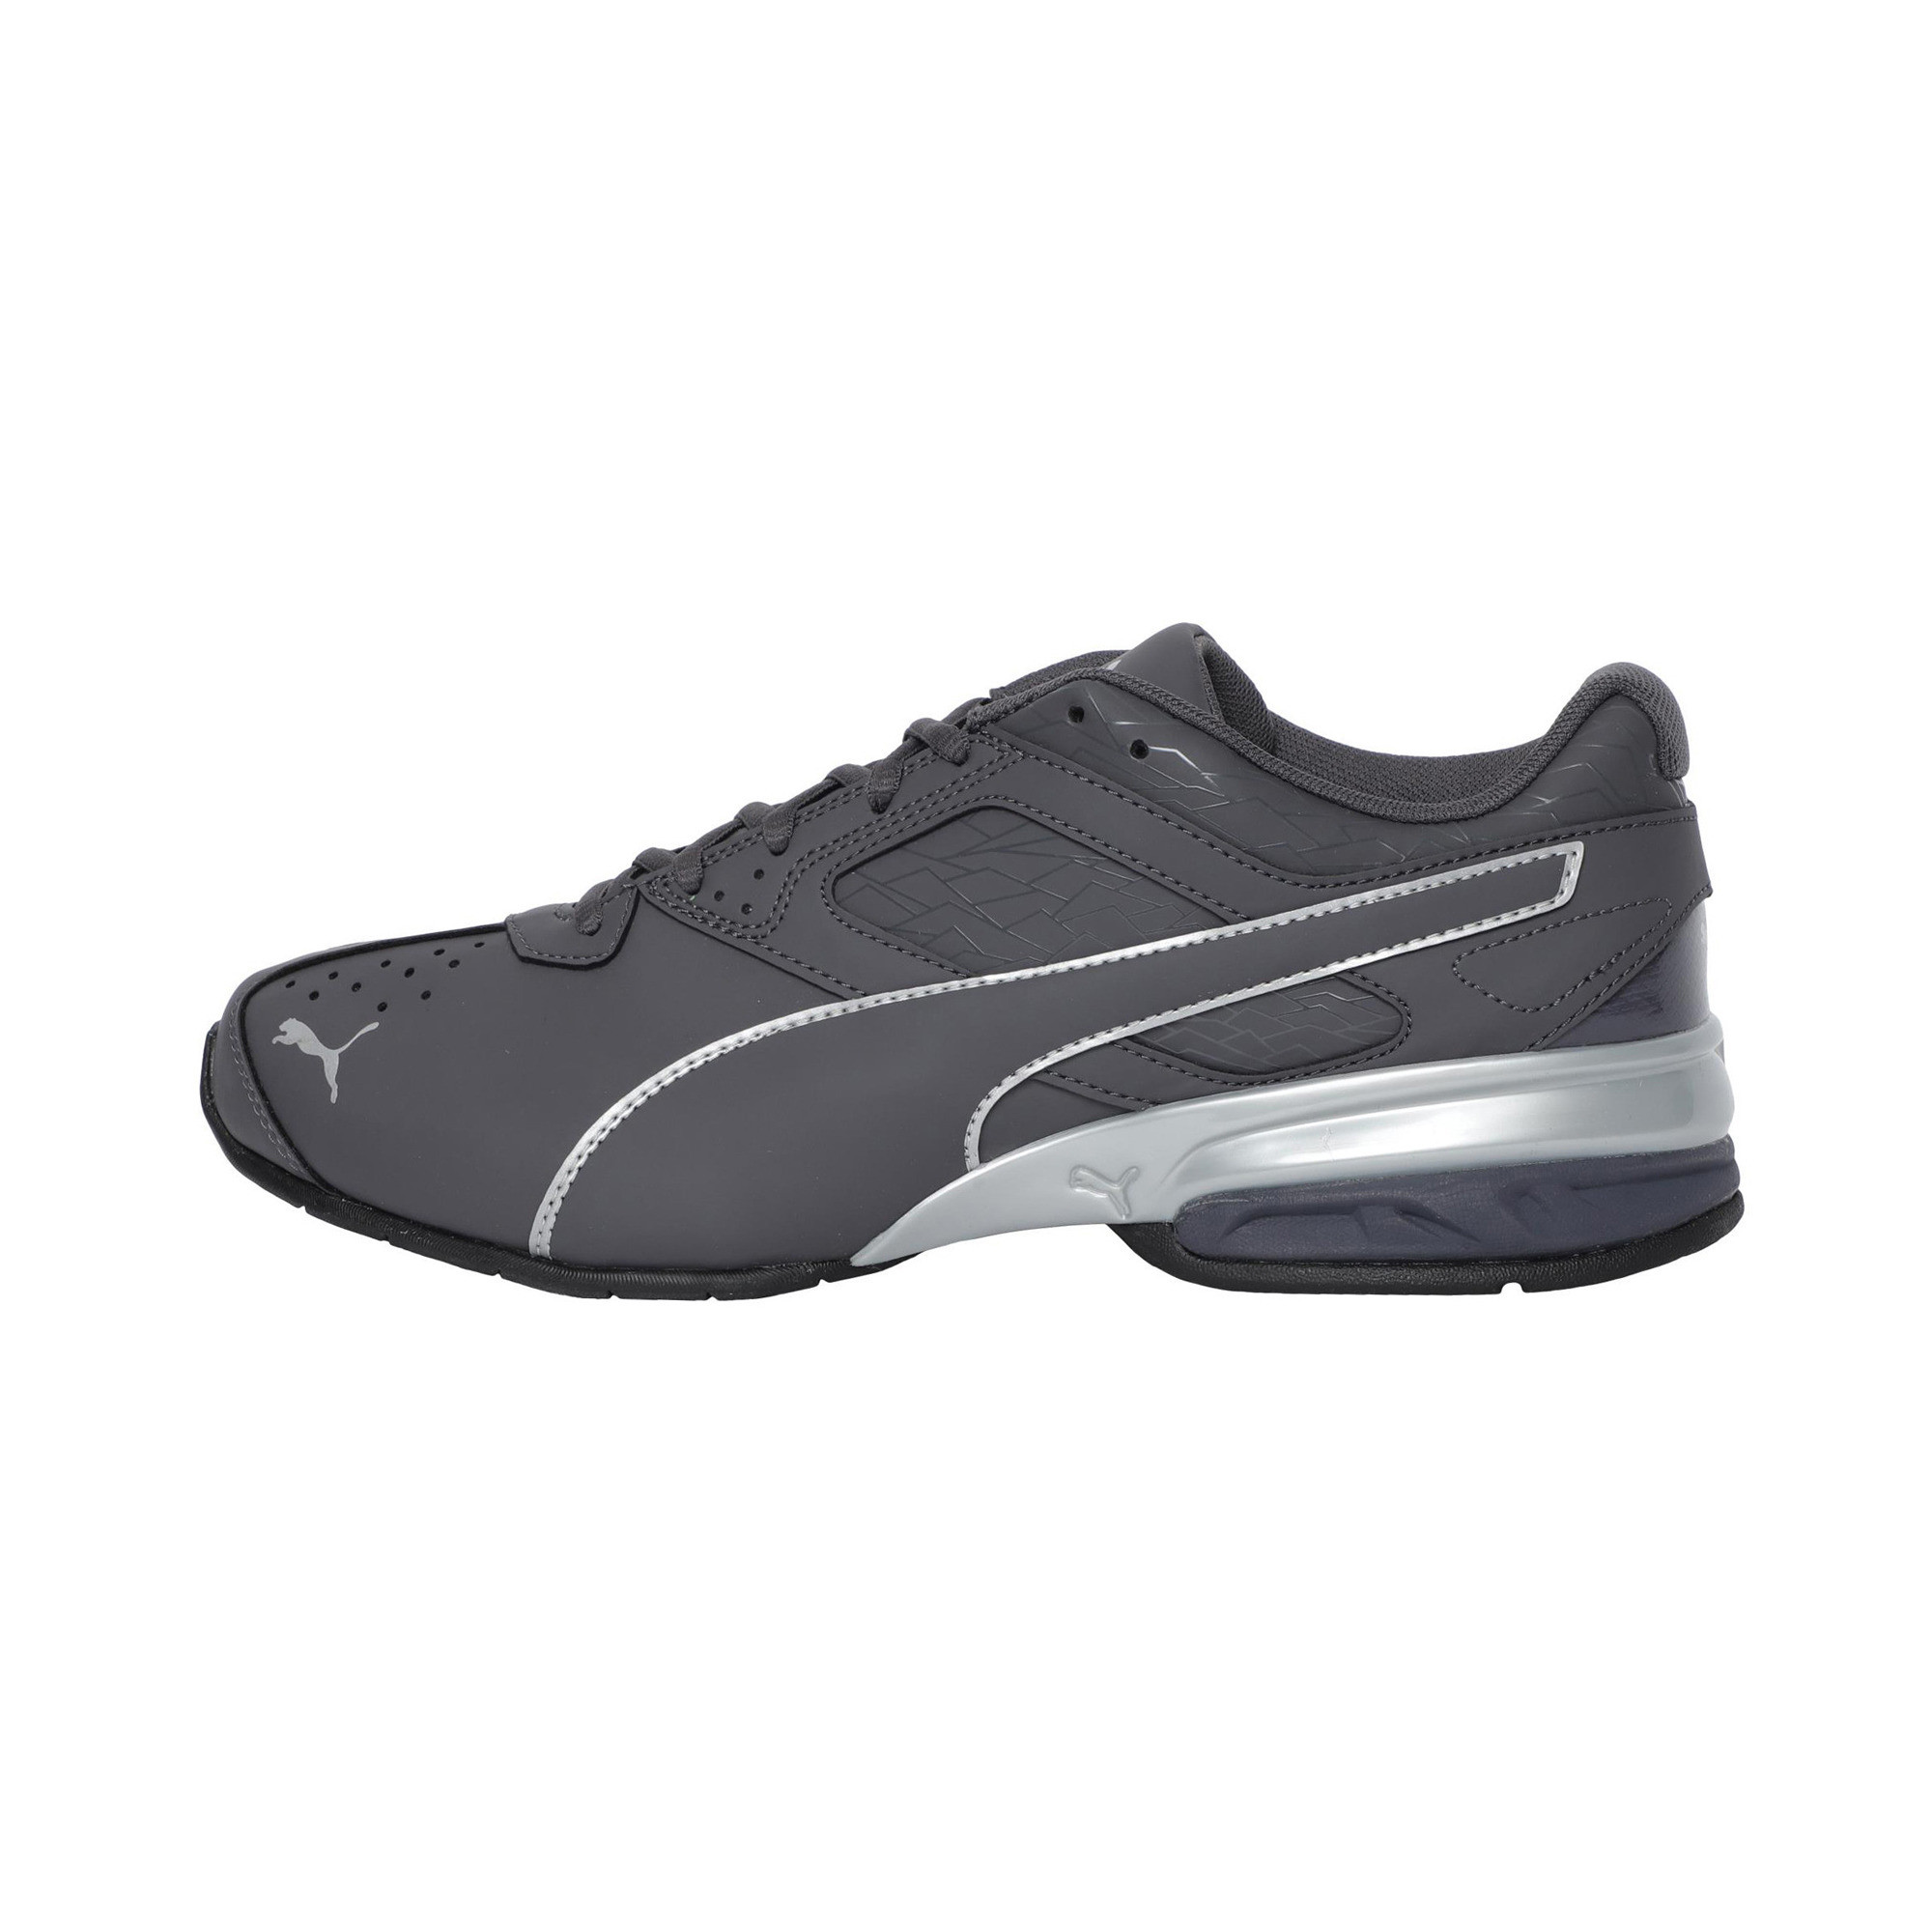 PUMA-Tazon-6-Fracture-FM-Men-039-s-Sneakers-Men-Shoe-Running thumbnail 18